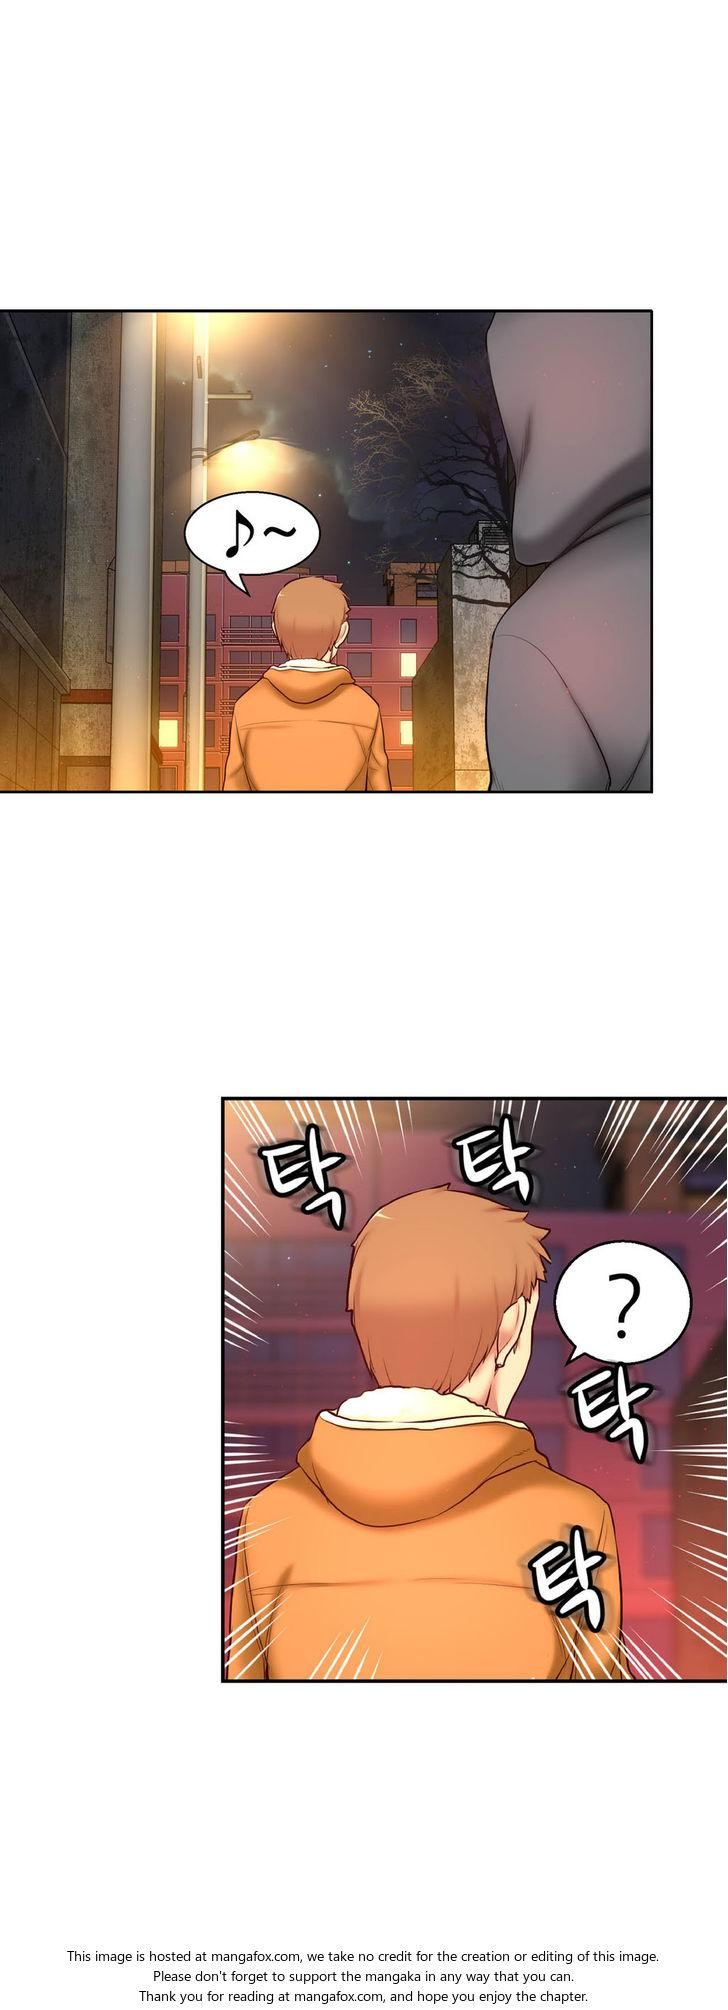 [Donggul Gom] She is Young (English) Part 1/2 1634